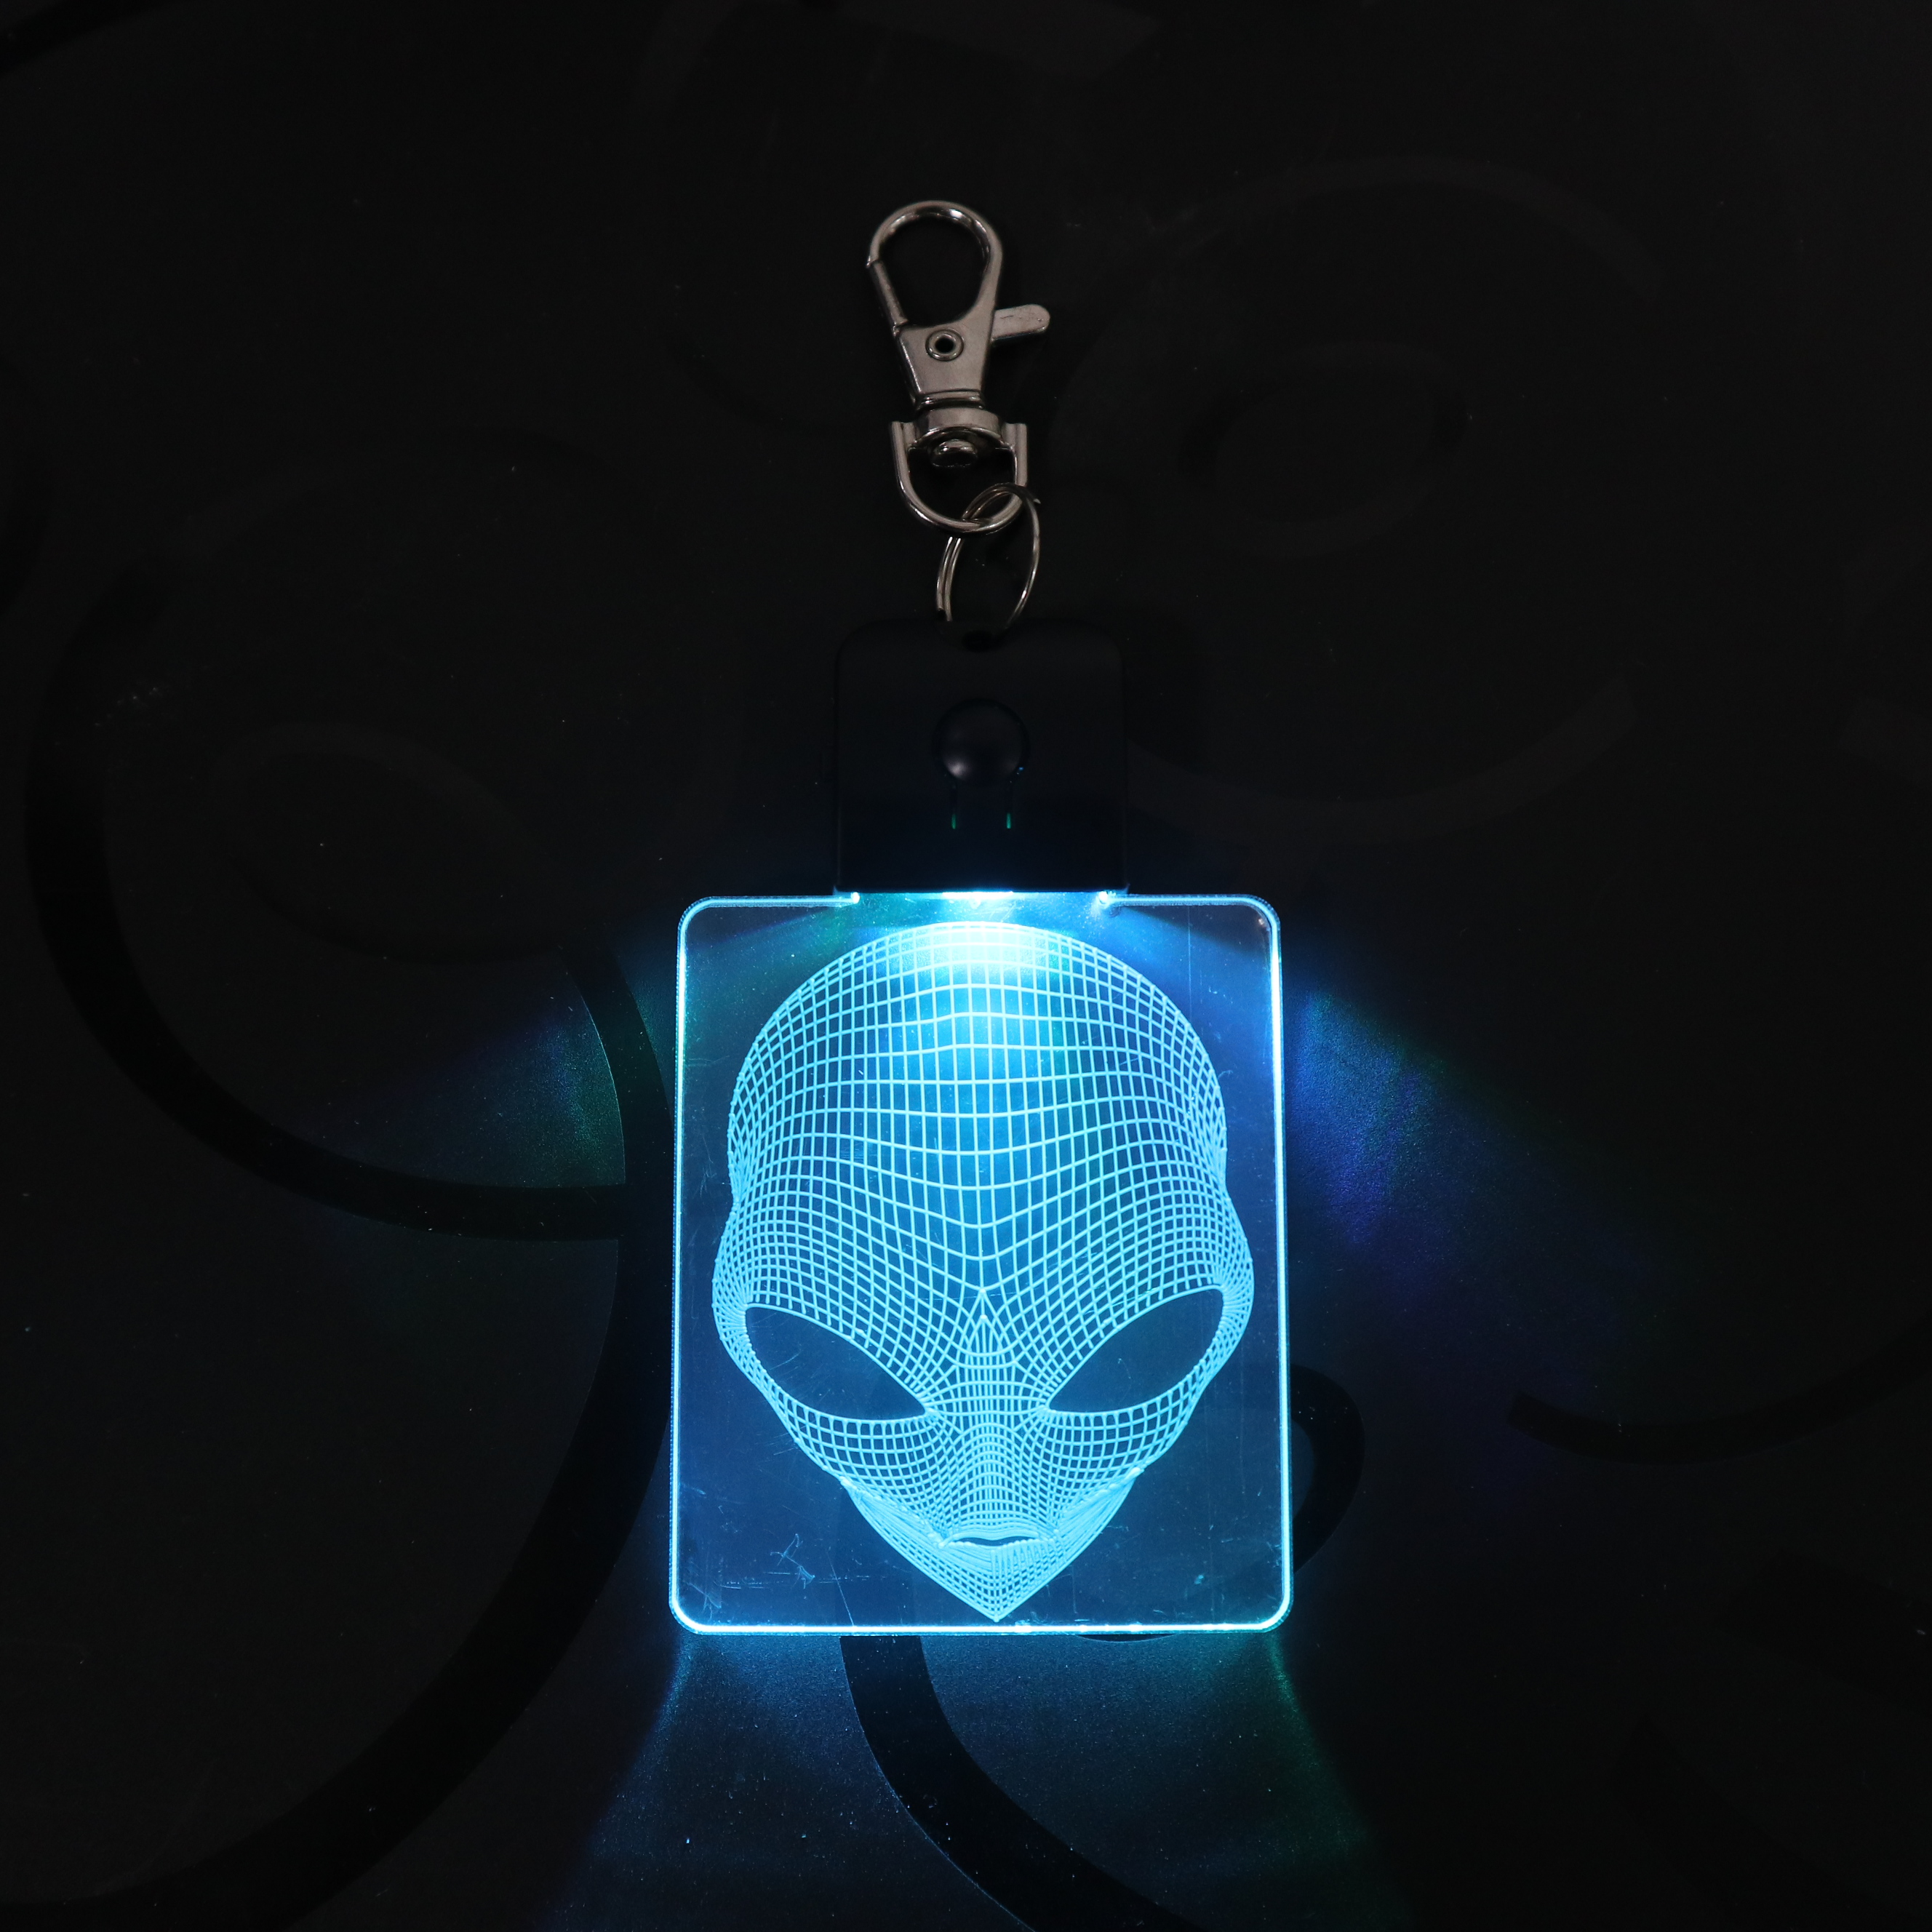 Alien Head Keychain 3D LED Arylic Night Light Magical Decor Lamp Lighting Colors Decoration Gift Dropshipping